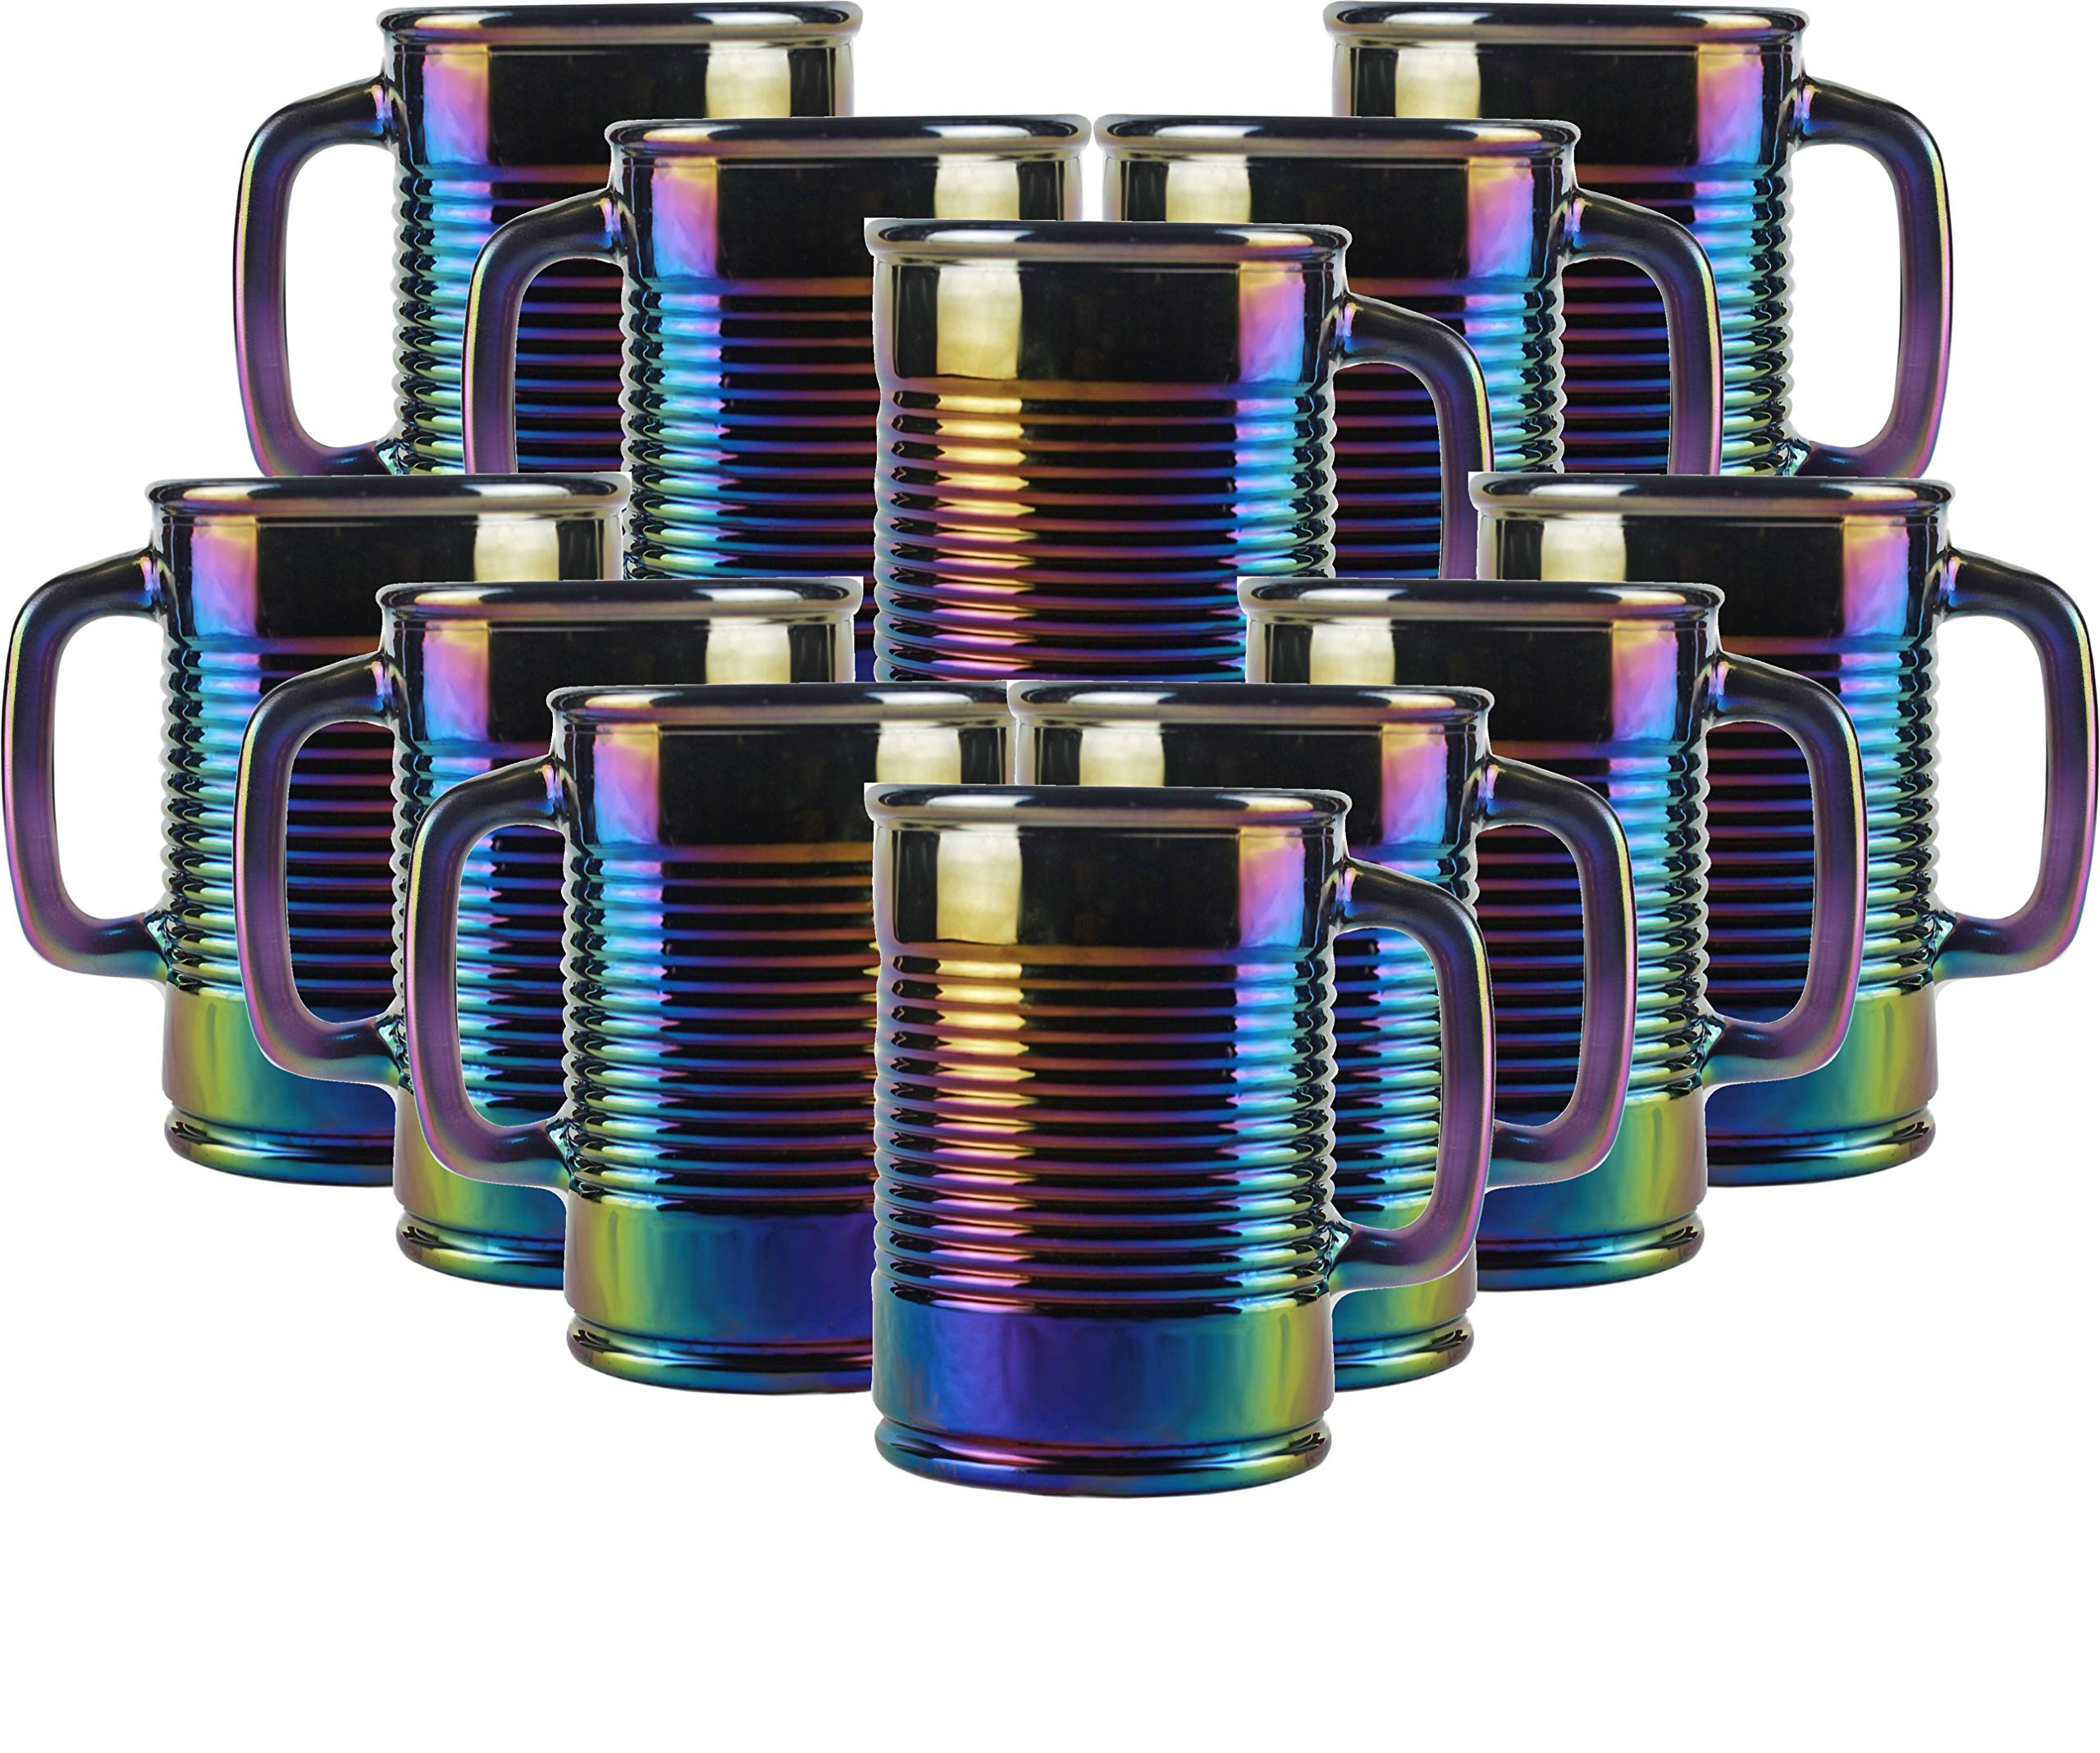 Circleware Huge 12-Piece Set of Mason Jar Mugs in Fun Can Shaped Glasses, Home and Kitchen Farmhouse Glassware Décor Drink Tumblers for Water, Beer, Whiskey and Cold Beverages, 17.5 oz, Rainbow by Circleware